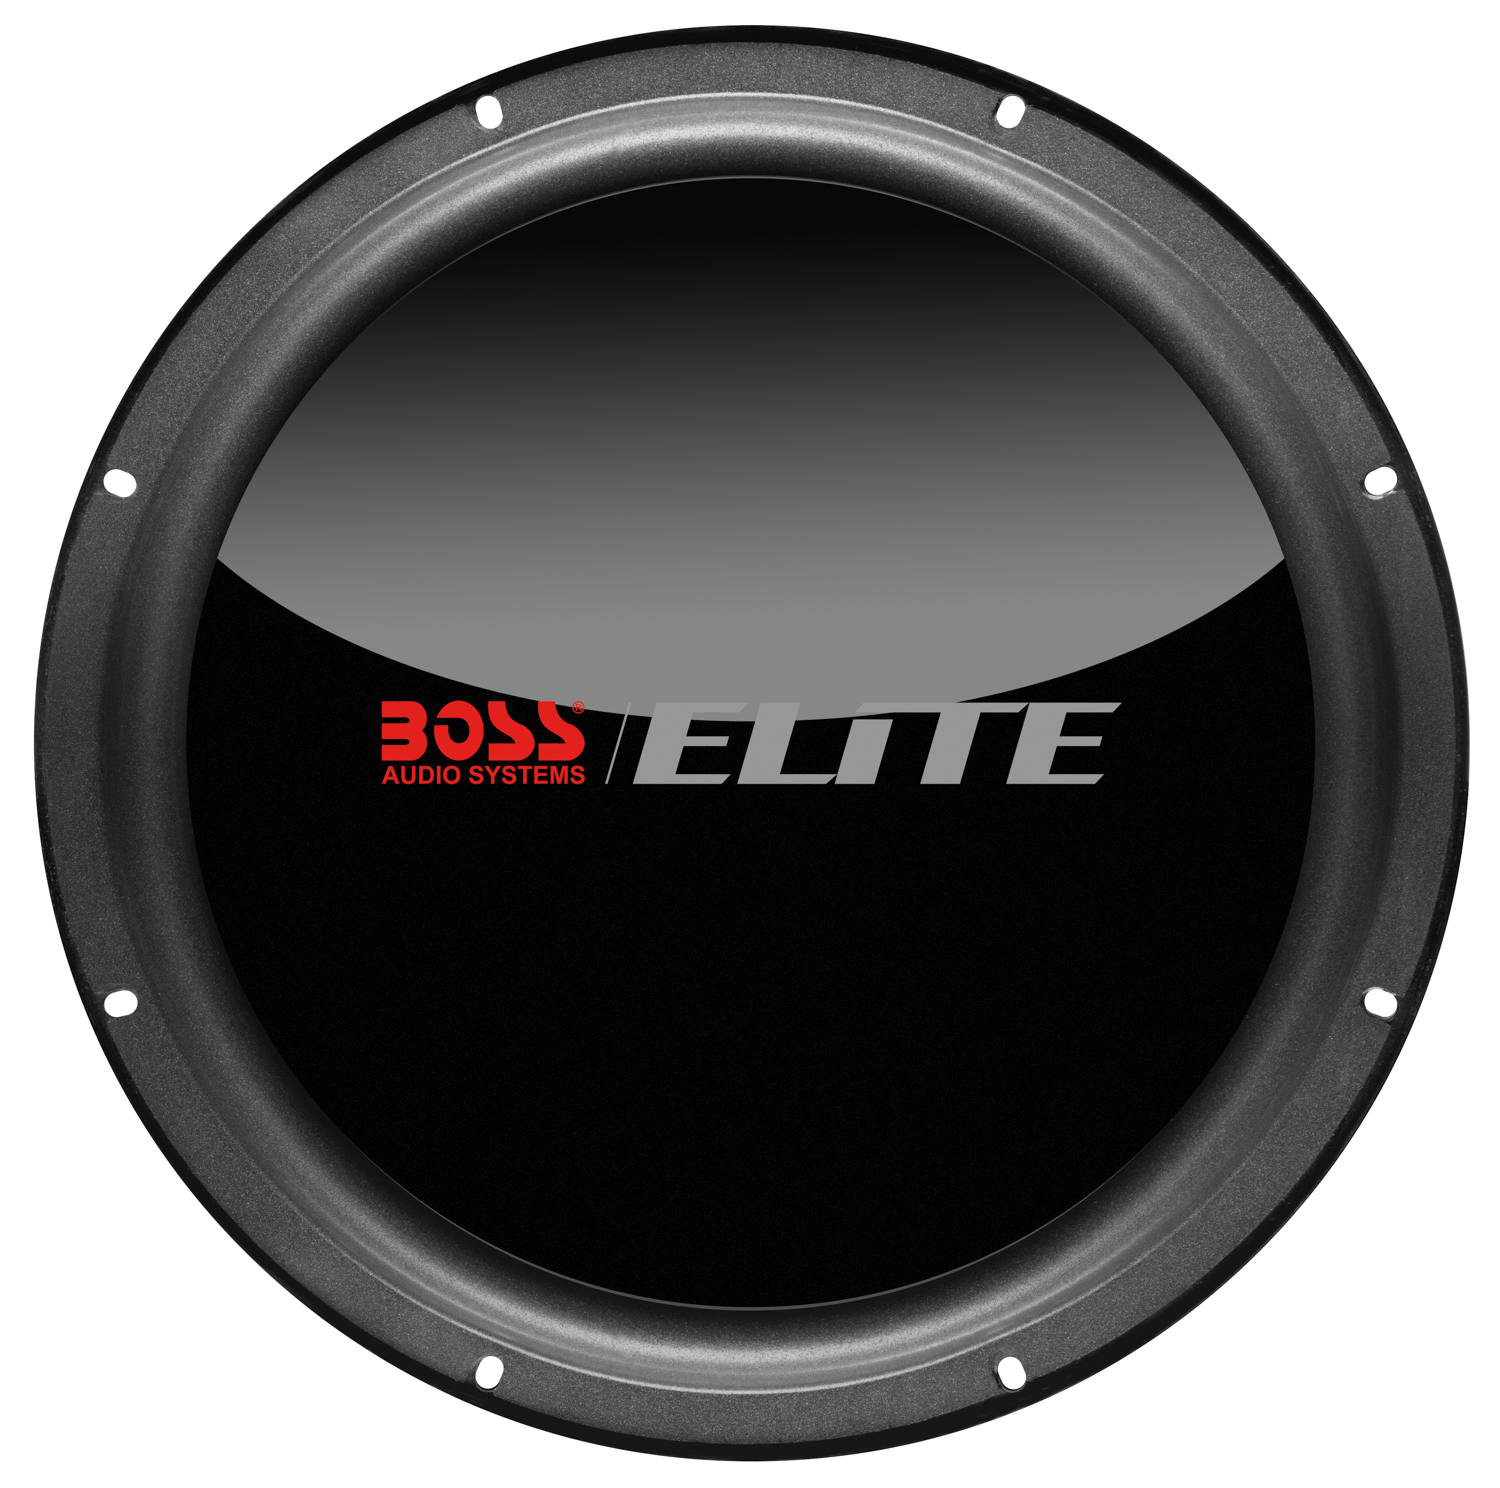 Bdvc12 Boss Audio Systems Multiple Subwoofer Wiring Types